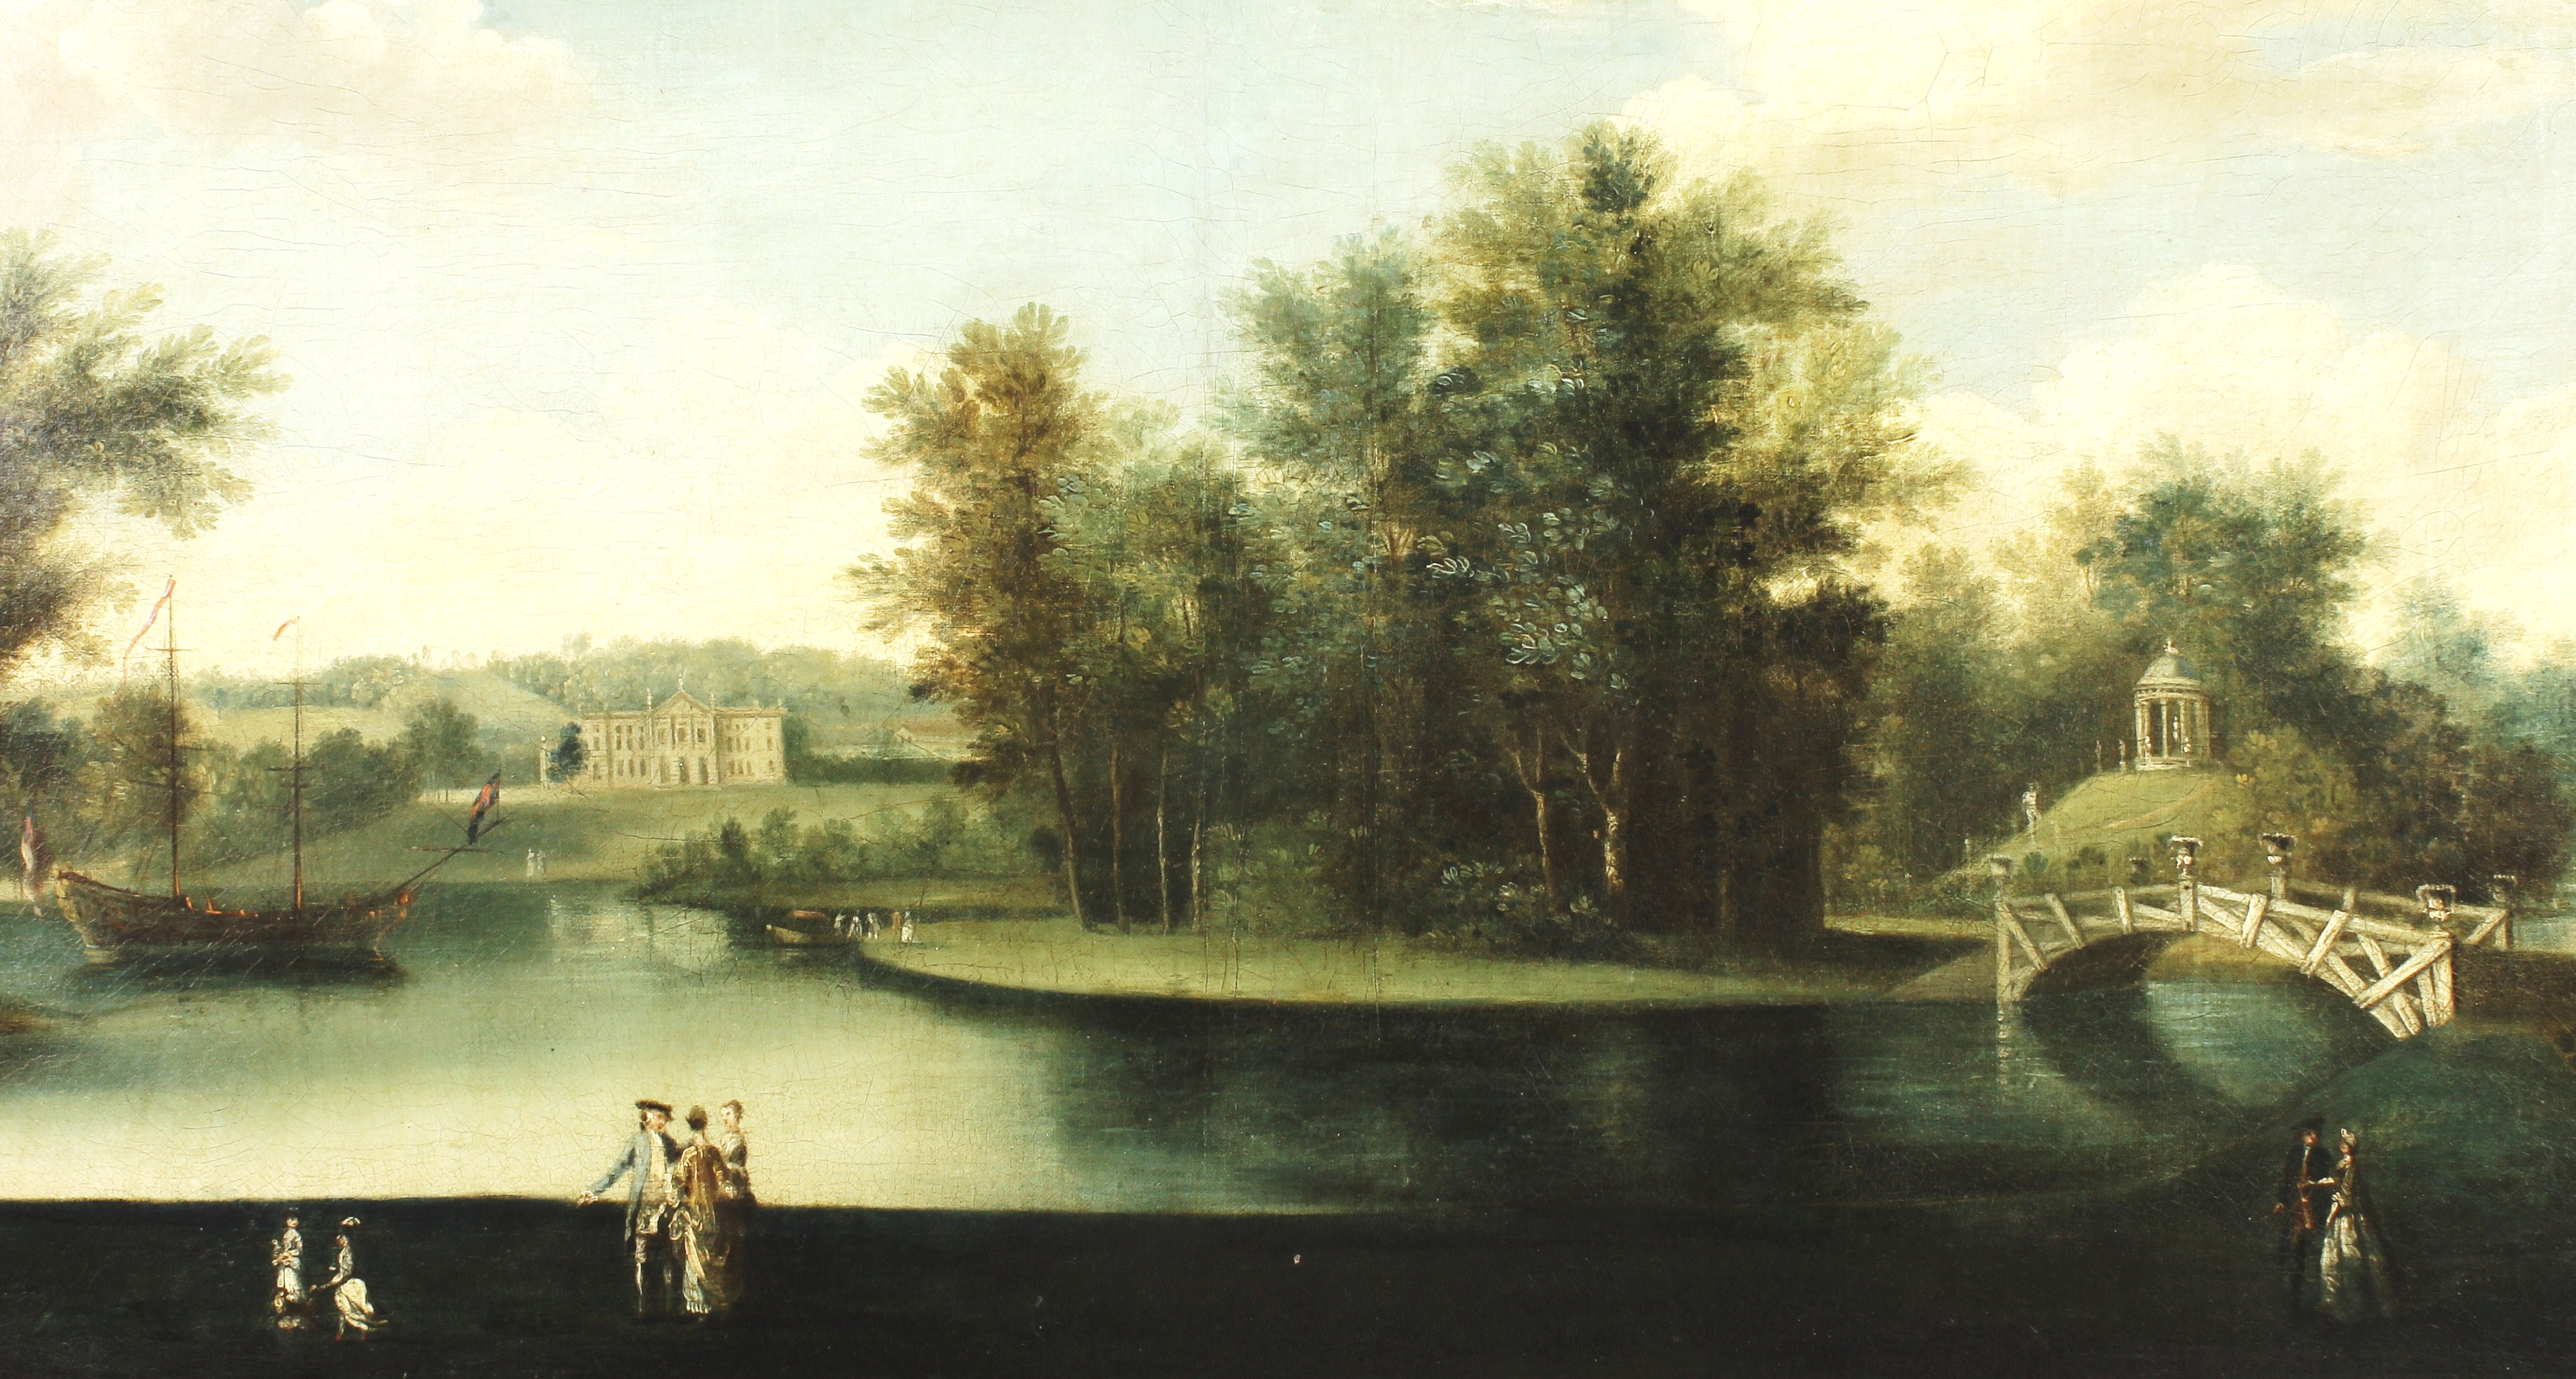 Wm. Hannan, British, 1725-1772-5, Wycombe Park. Sold For $11,328 In October 2015.